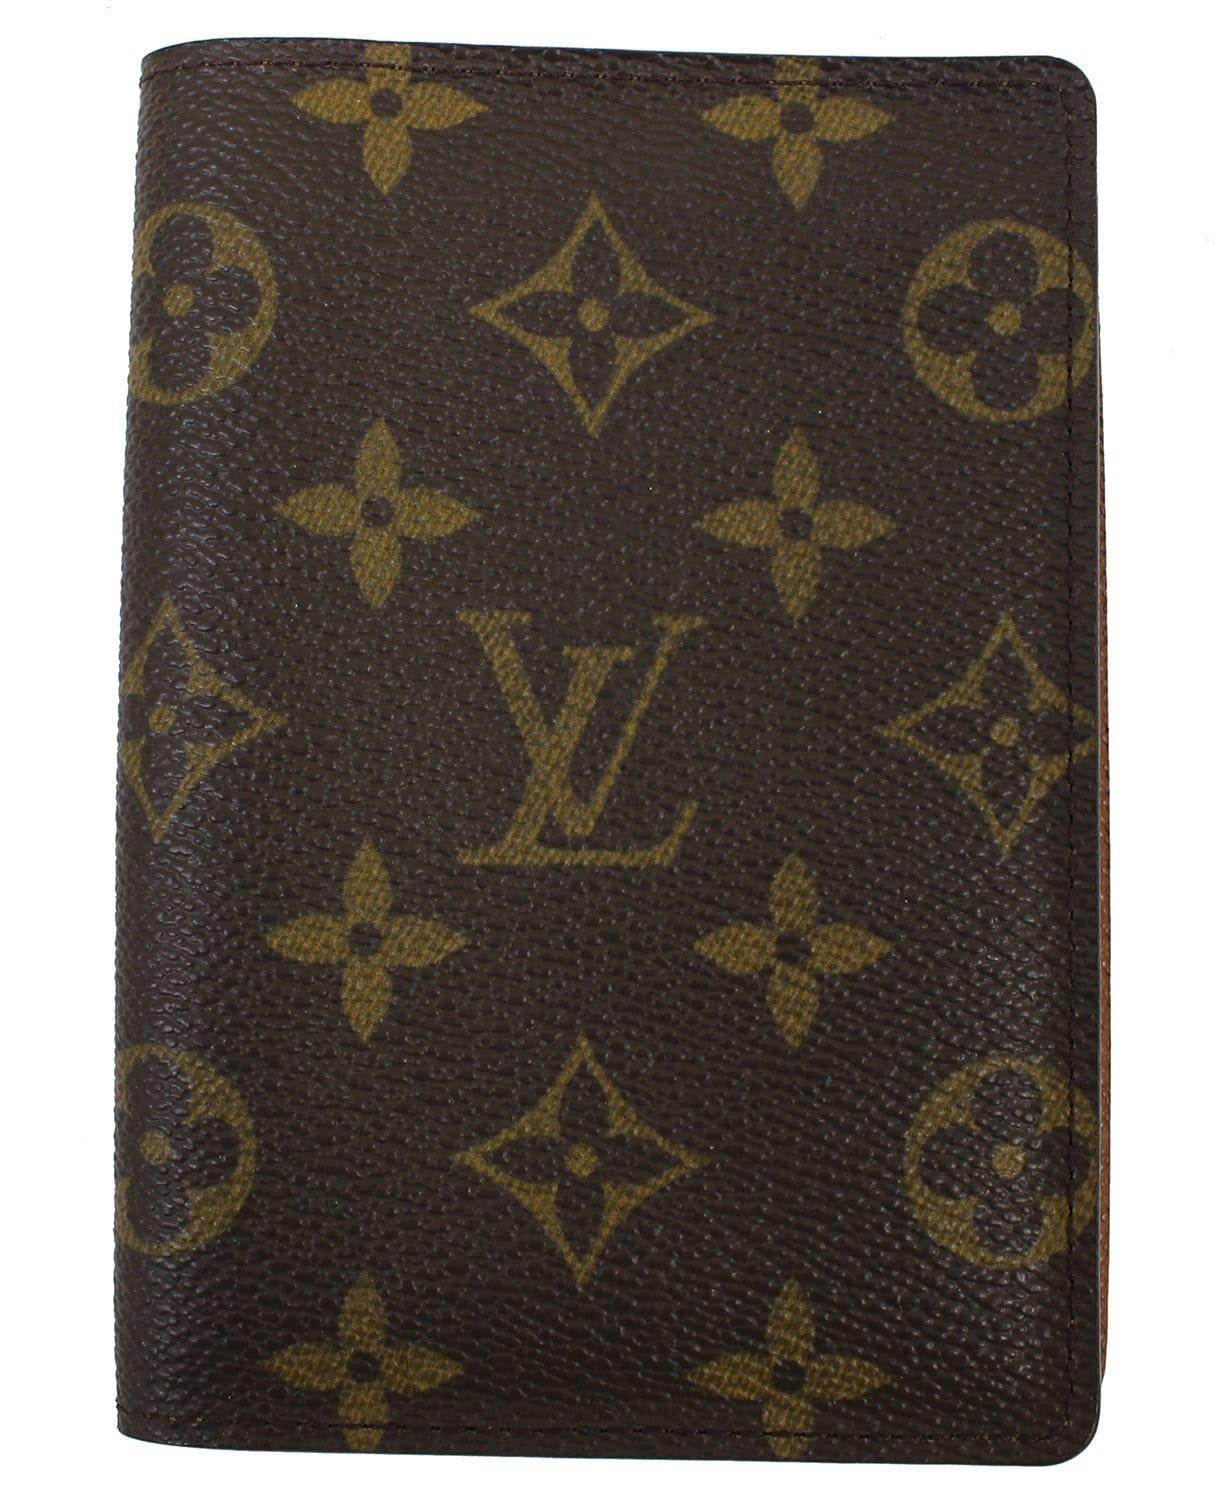 2055e862e1d Louis vuitton monogram canvas passport cover JPG 1215x1500 Louis vuitton  passport case